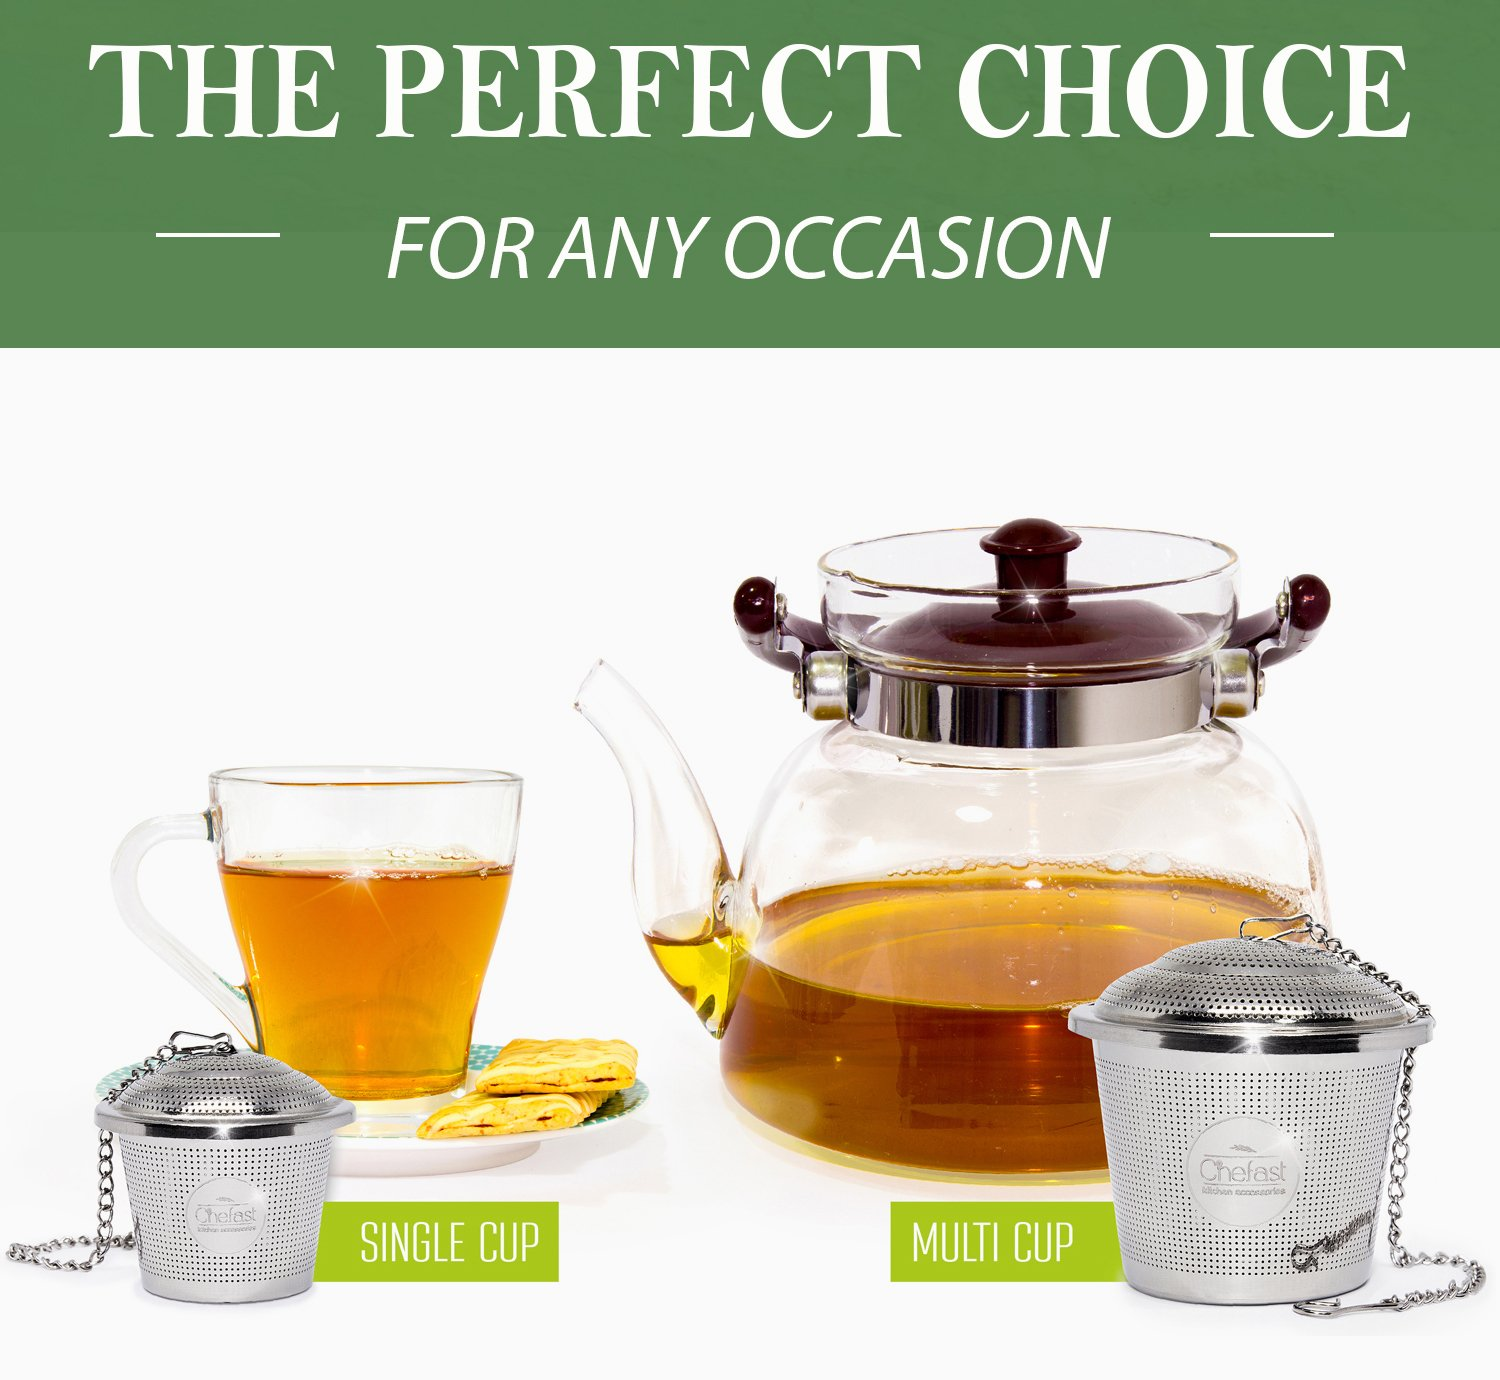 Tea Infuser Set by Chefast (2+1 Pack) - Combo Kit of 1 Large and 2 Single Cup Loose Leaf Infusers, Plus Metal Scoop with Clip - Reusable Stainless Steel Strainers | Diffusers | Balls | Steepers by Chefast (Image #4)